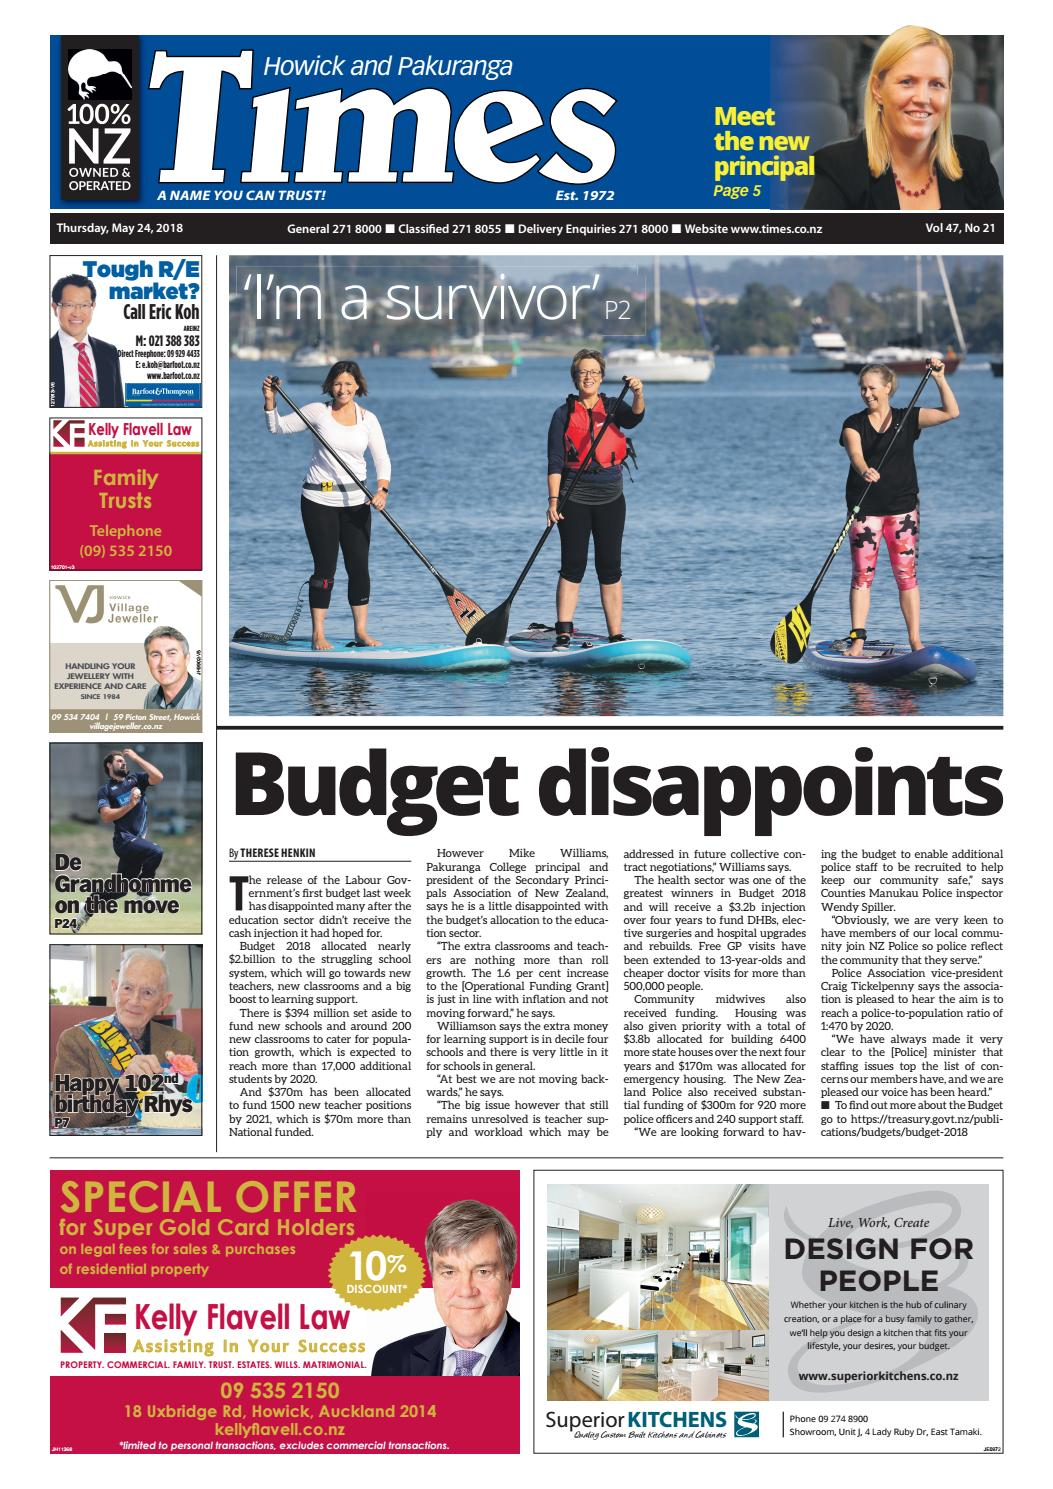 Howick and Pakuranga Times, May 24, 2018 by Times Media - issuu